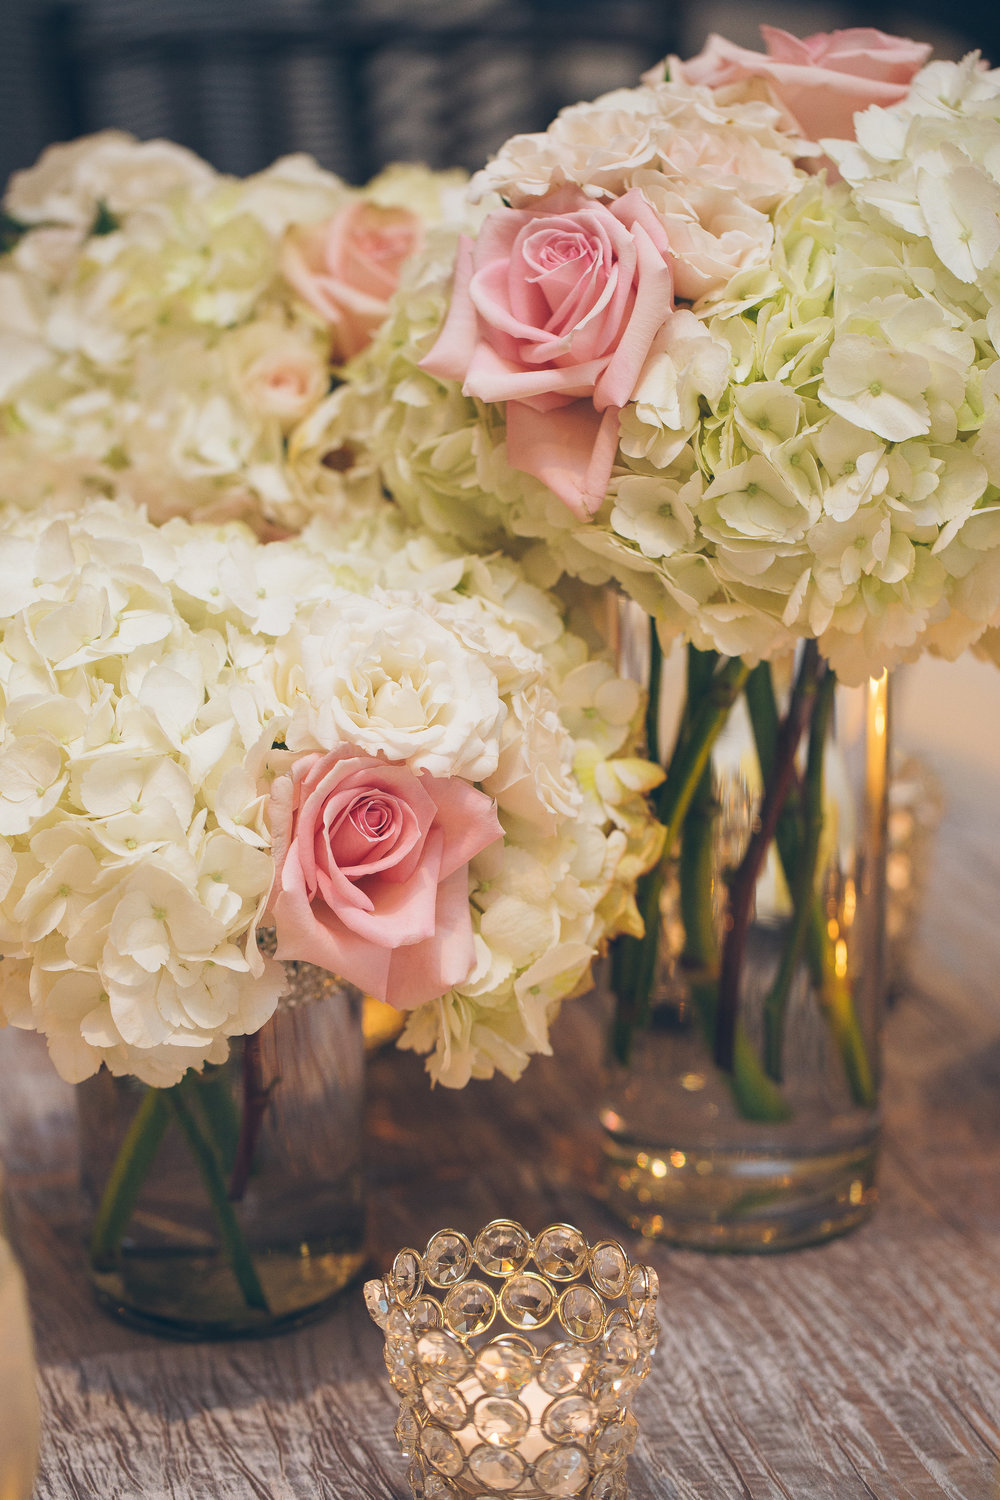 View More: http://laurenrosenauphoto.pass.us/whitleyanddarian